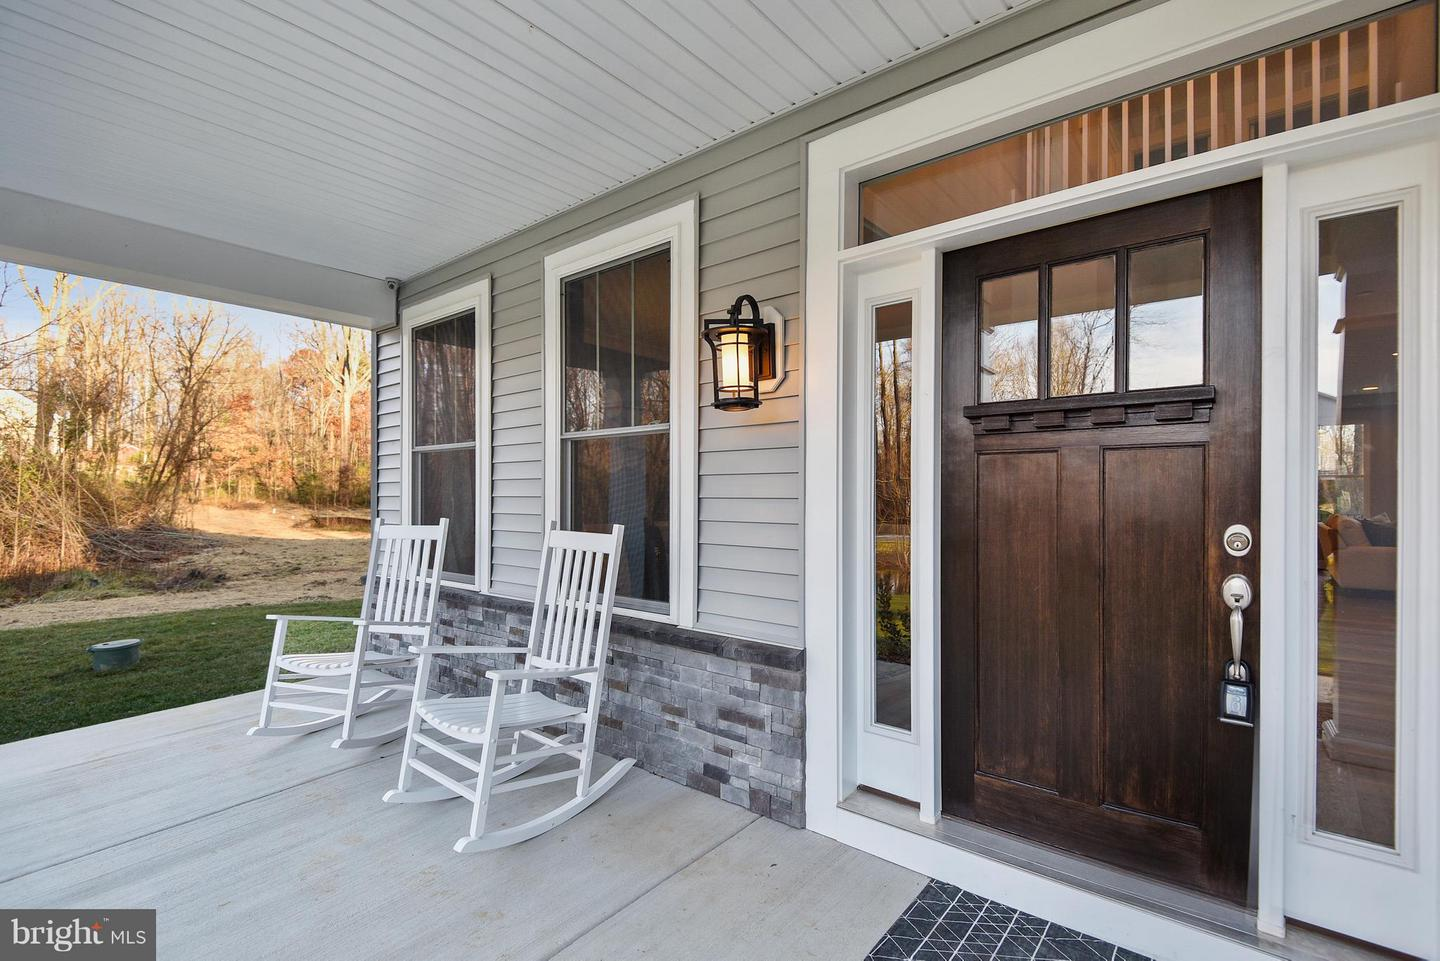 Additional photo for property listing at 299 Bonheur Ave Gambrills, Maryland 21054 United States